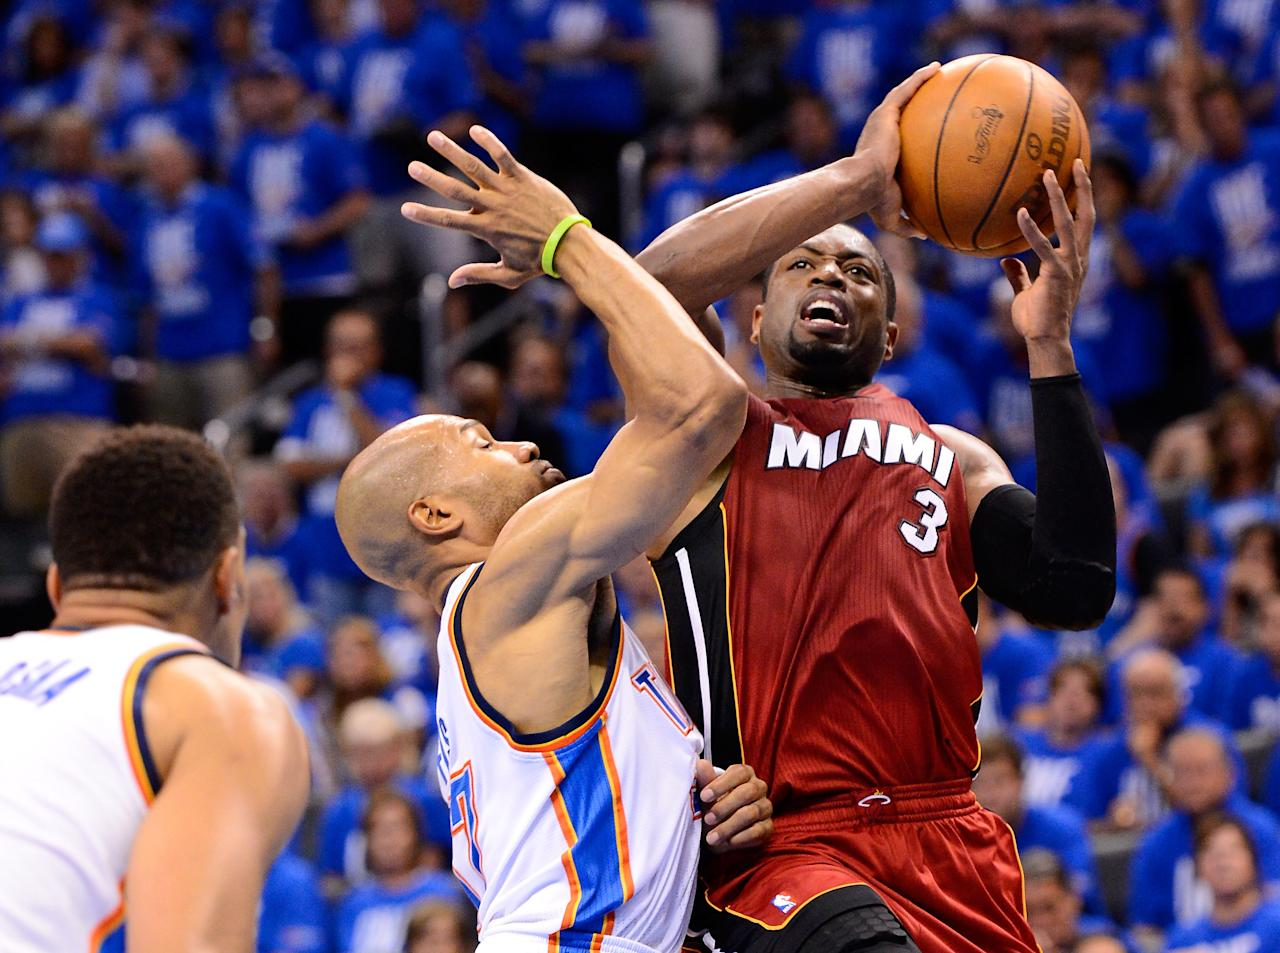 OKLAHOMA CITY, OK - JUNE 12:  Dwyane Wade #3 of the Miami Heat goes up for a shot over Derek Fisher #37 of the Oklahoma City Thunder in the second half in Game One of the 2012 NBA Finals at Chesapeake Energy Arena on June 12, 2012 in Oklahoma City, Oklahoma. NOTE TO USER: User expressly acknowledges and agrees that, by downloading and or using this photograph, User is consenting to the terms and conditions of the Getty Images License Agreement.  (Photo by Ronald Martinez/Getty Images)